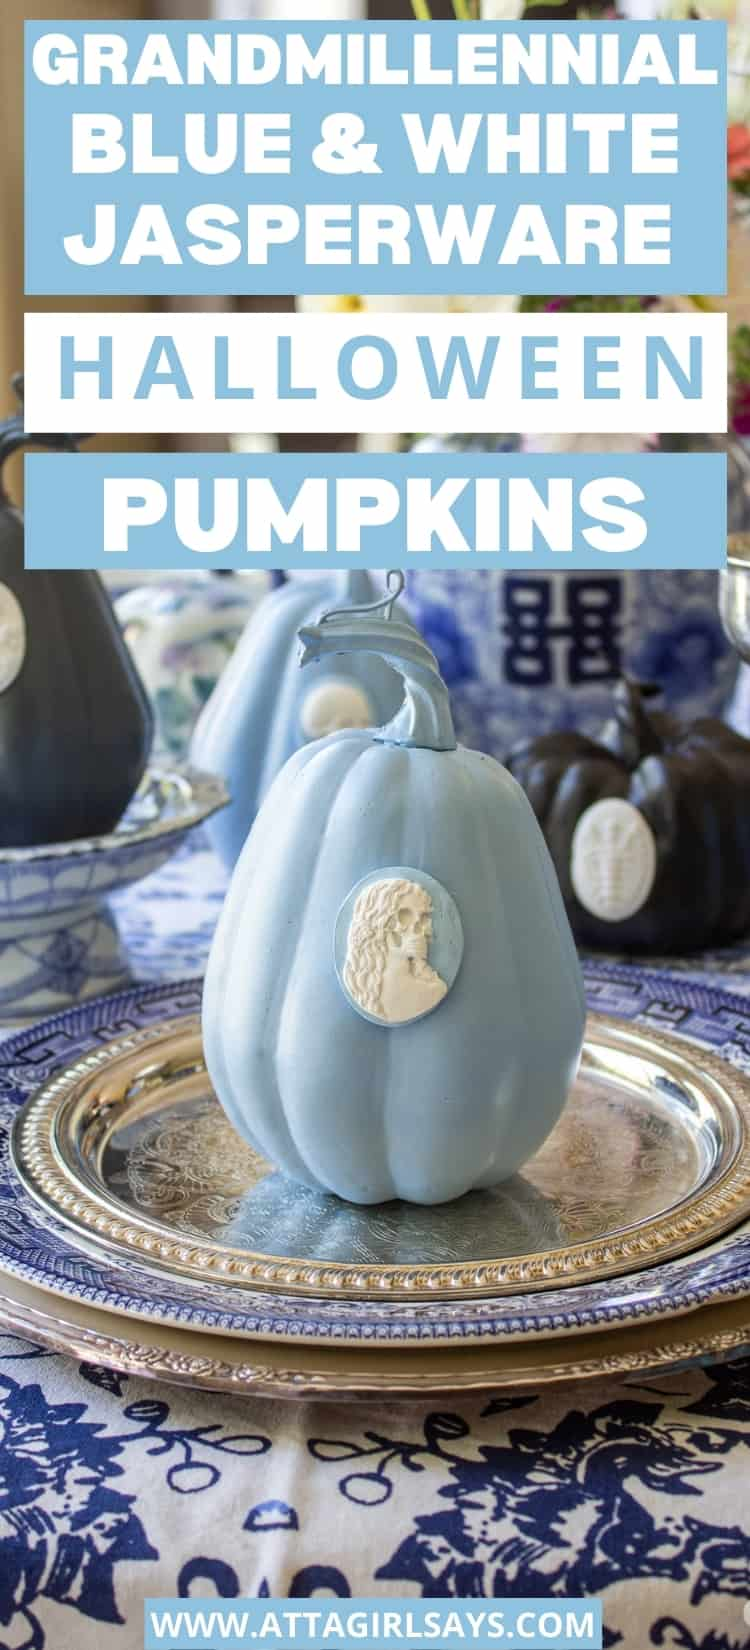 blue and white pumpkin with a skeleton cameo attached to it